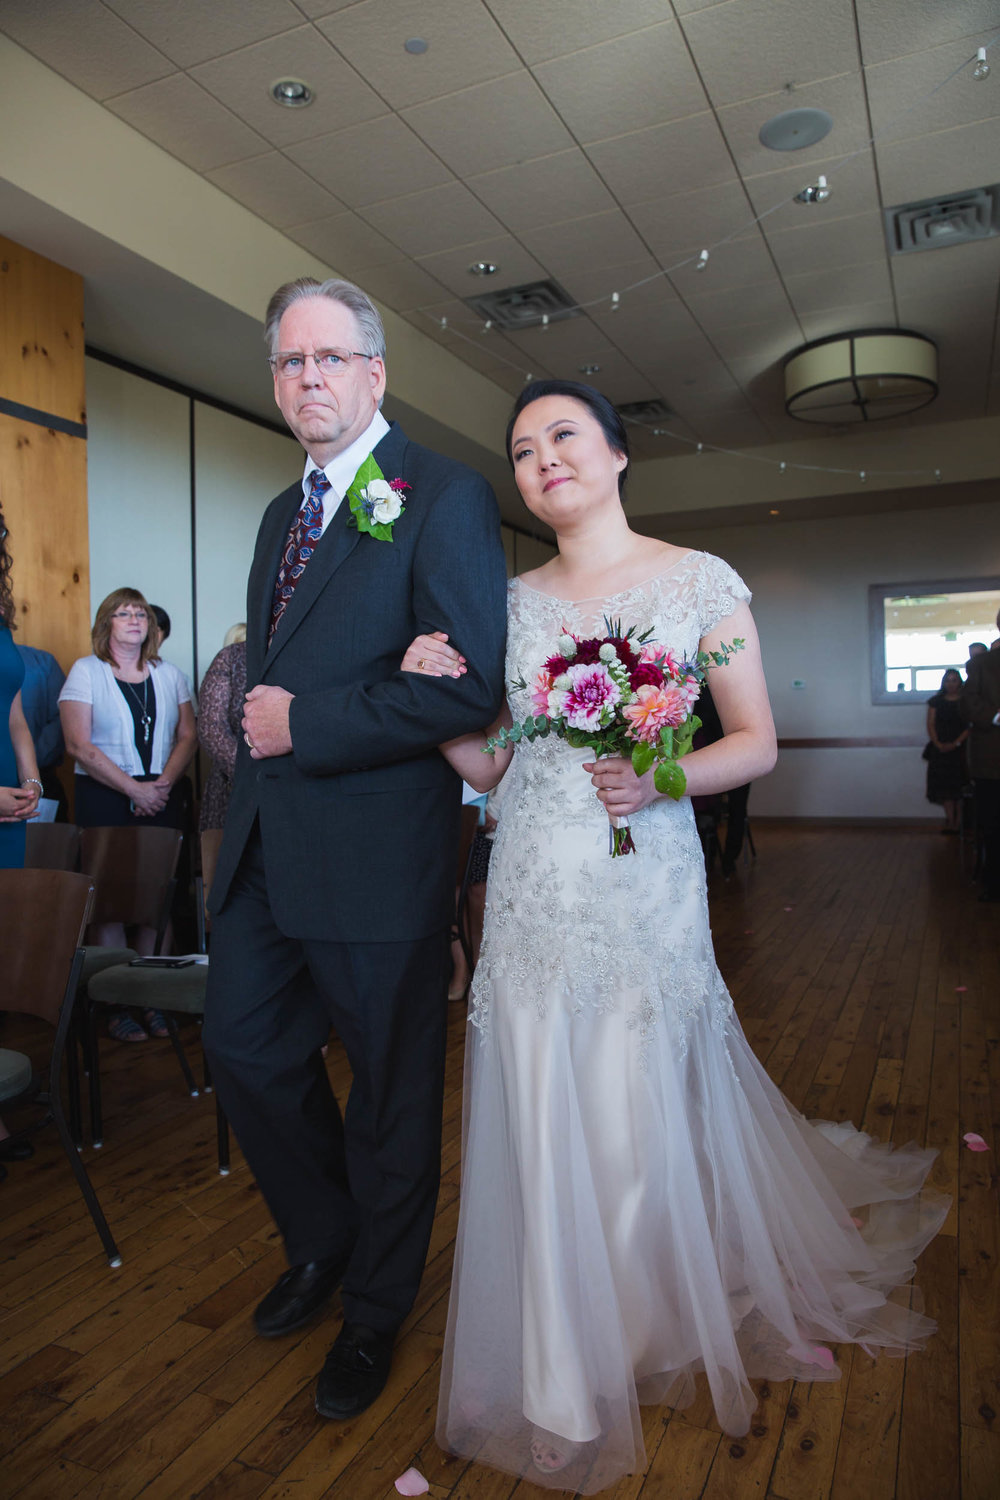 courtney and tom's wedding at pinstripes by anna schultz photography-52.jpg